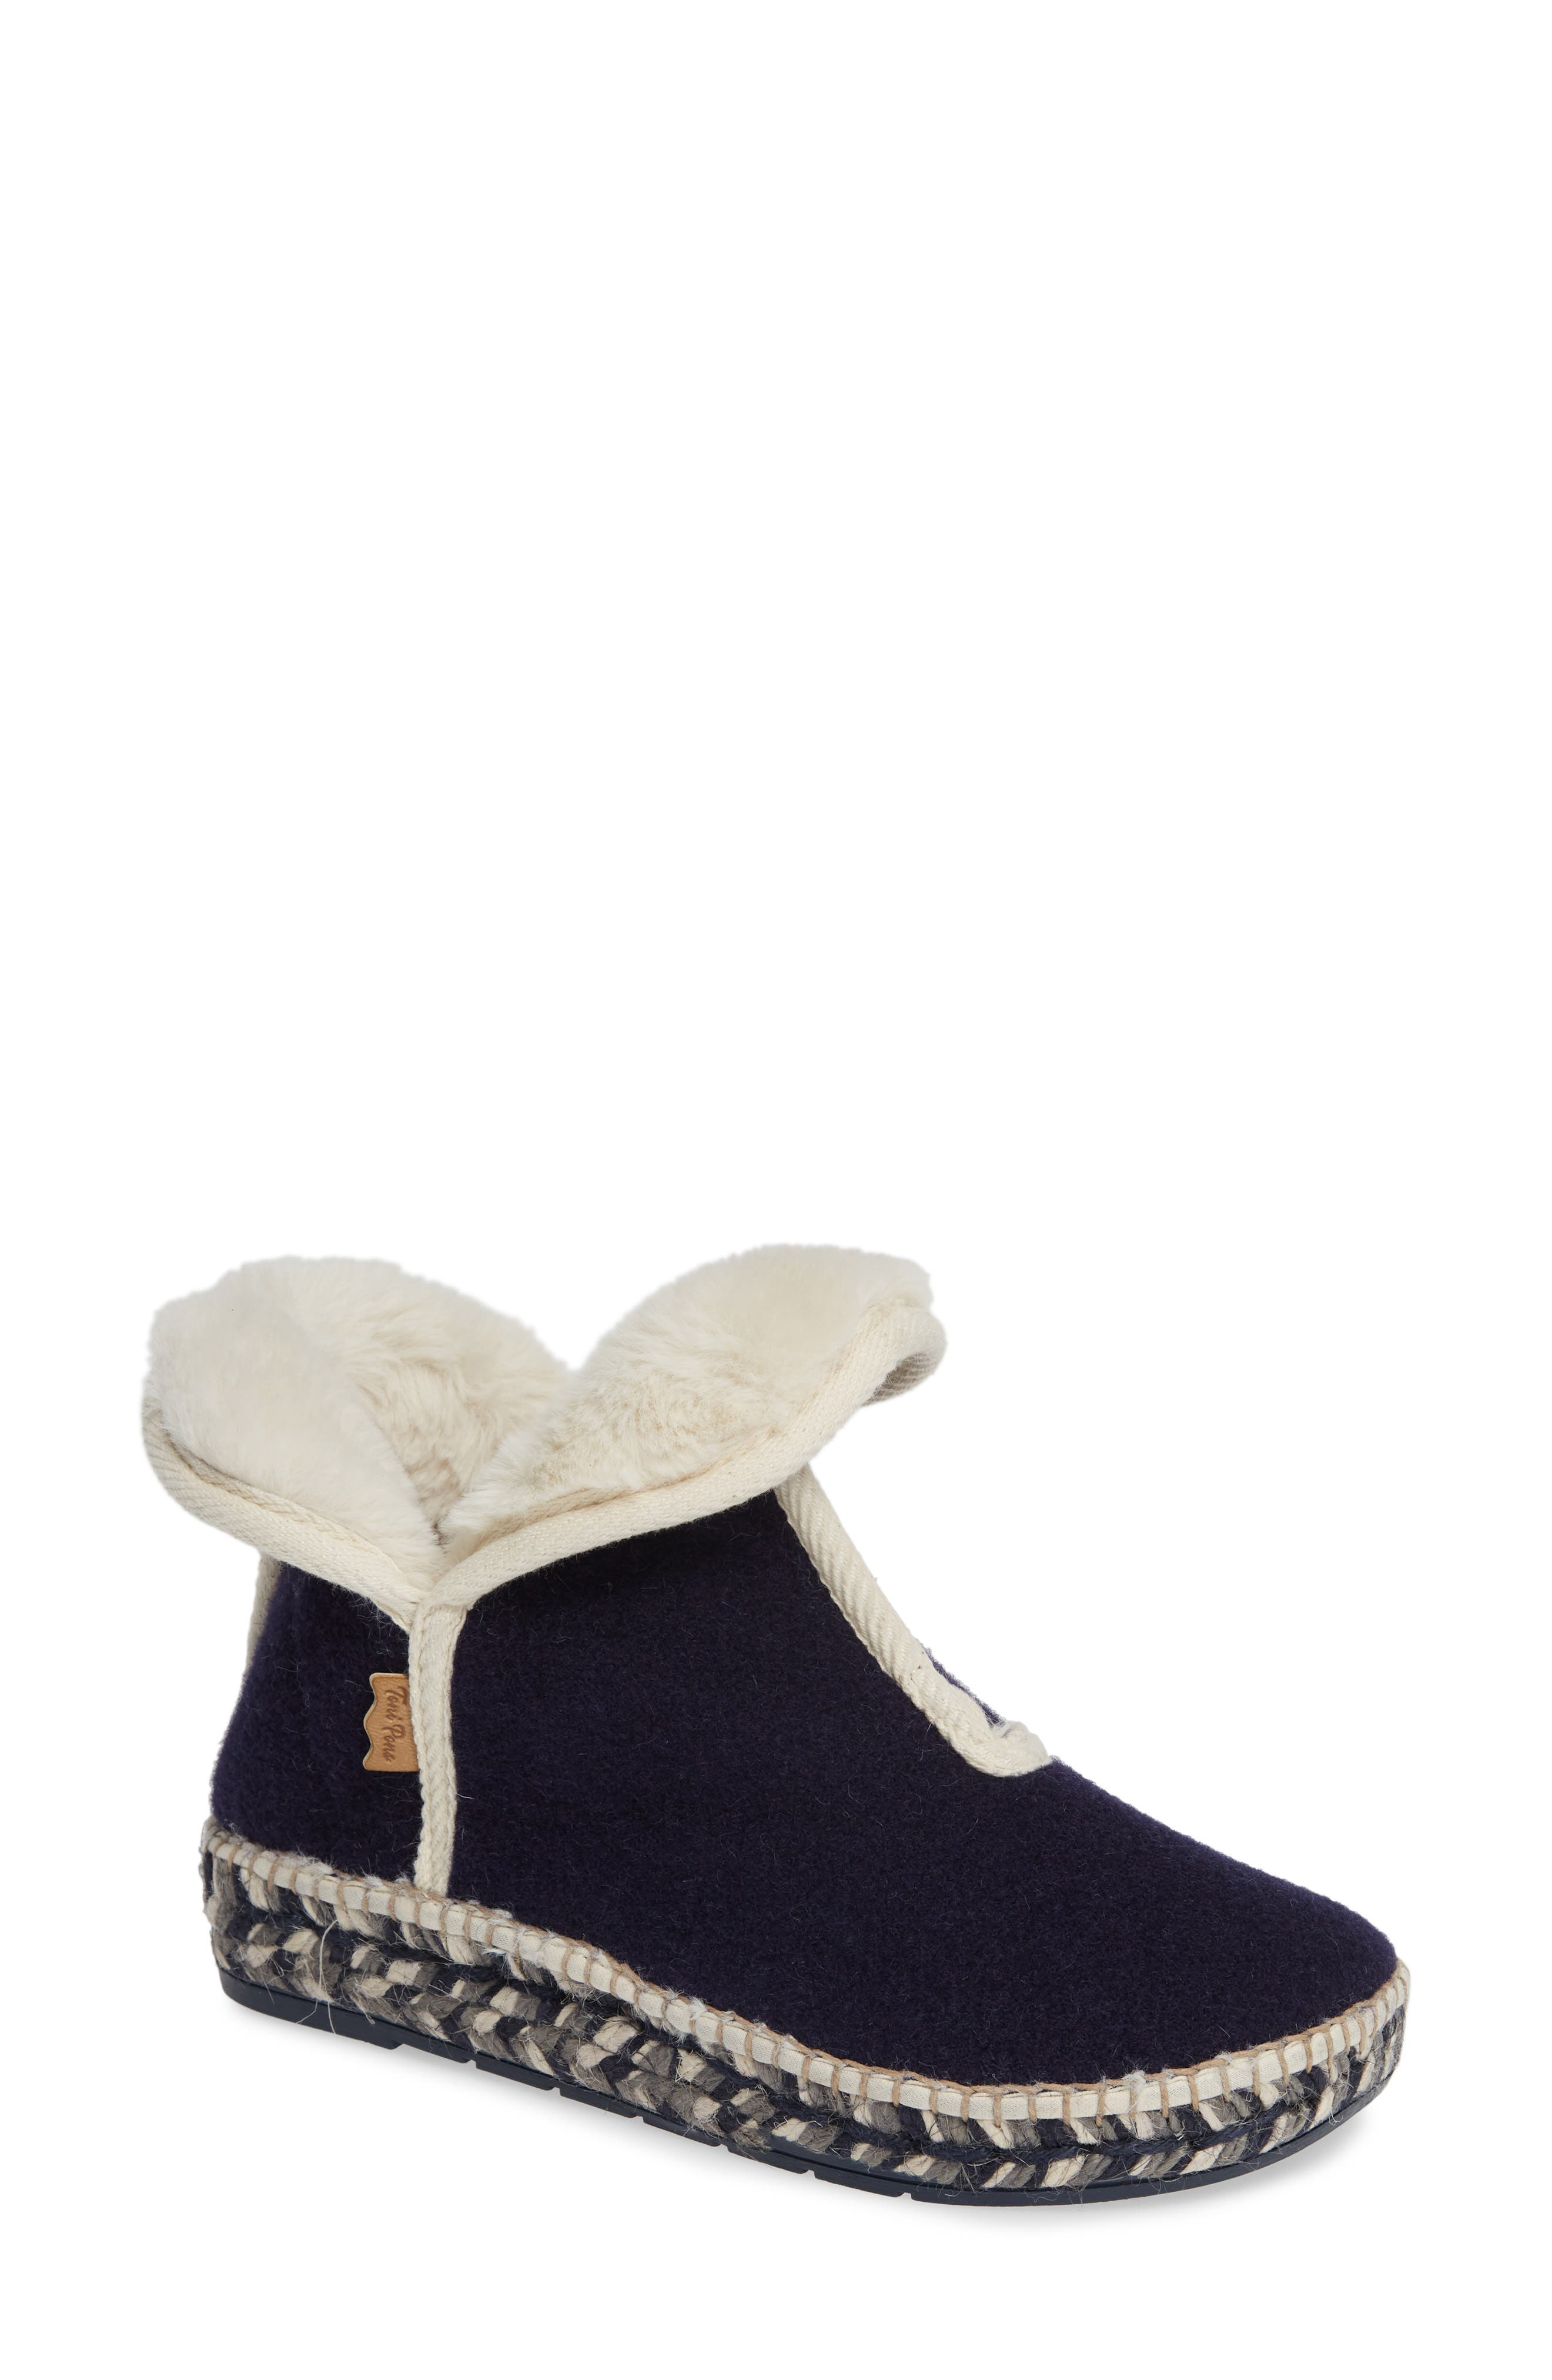 TONI PONS Espadrille Platform Bootie With Faux Fur Lining in Navy Fabric